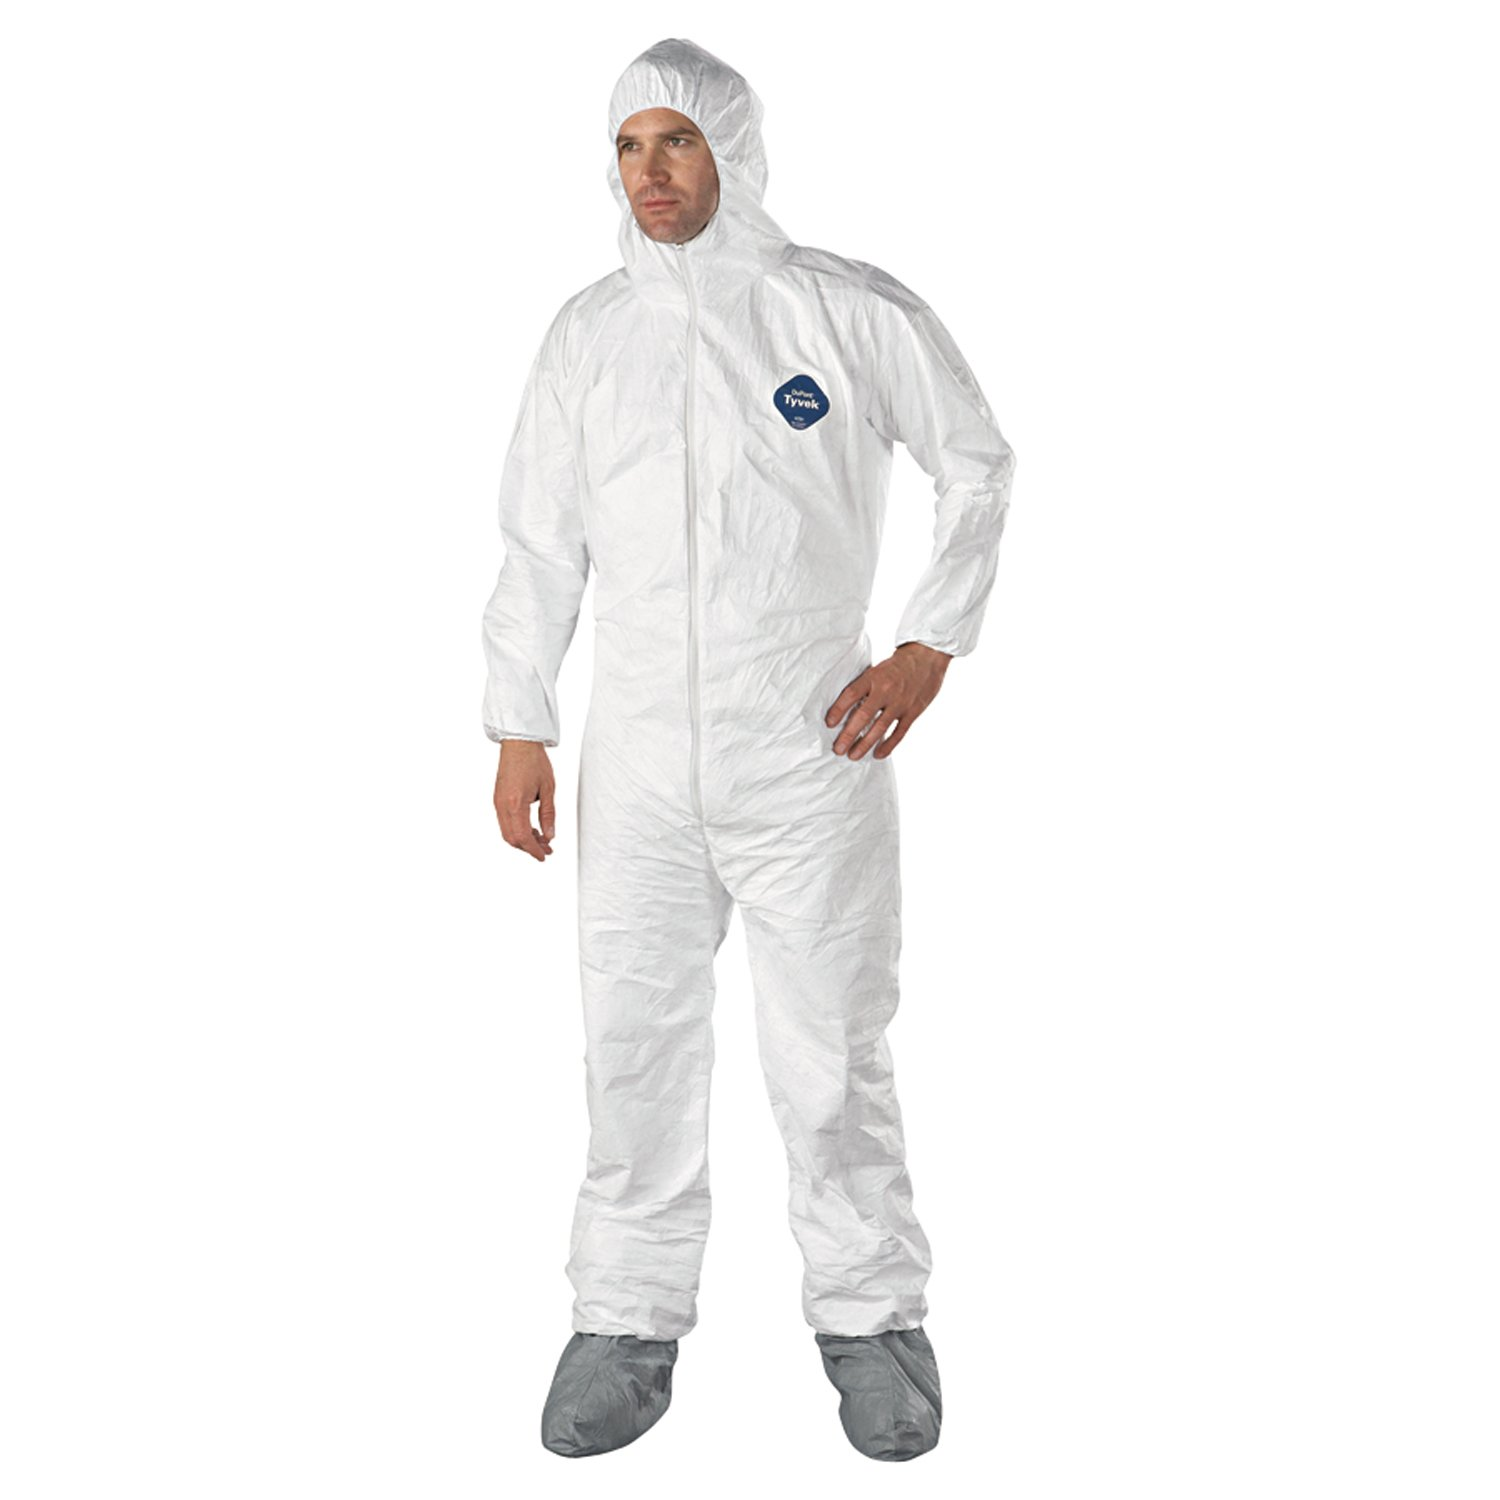 Dupont TY122S-L Tyvek Coveralls with Attached Hood and Boots, Large, White (Pack of 25)